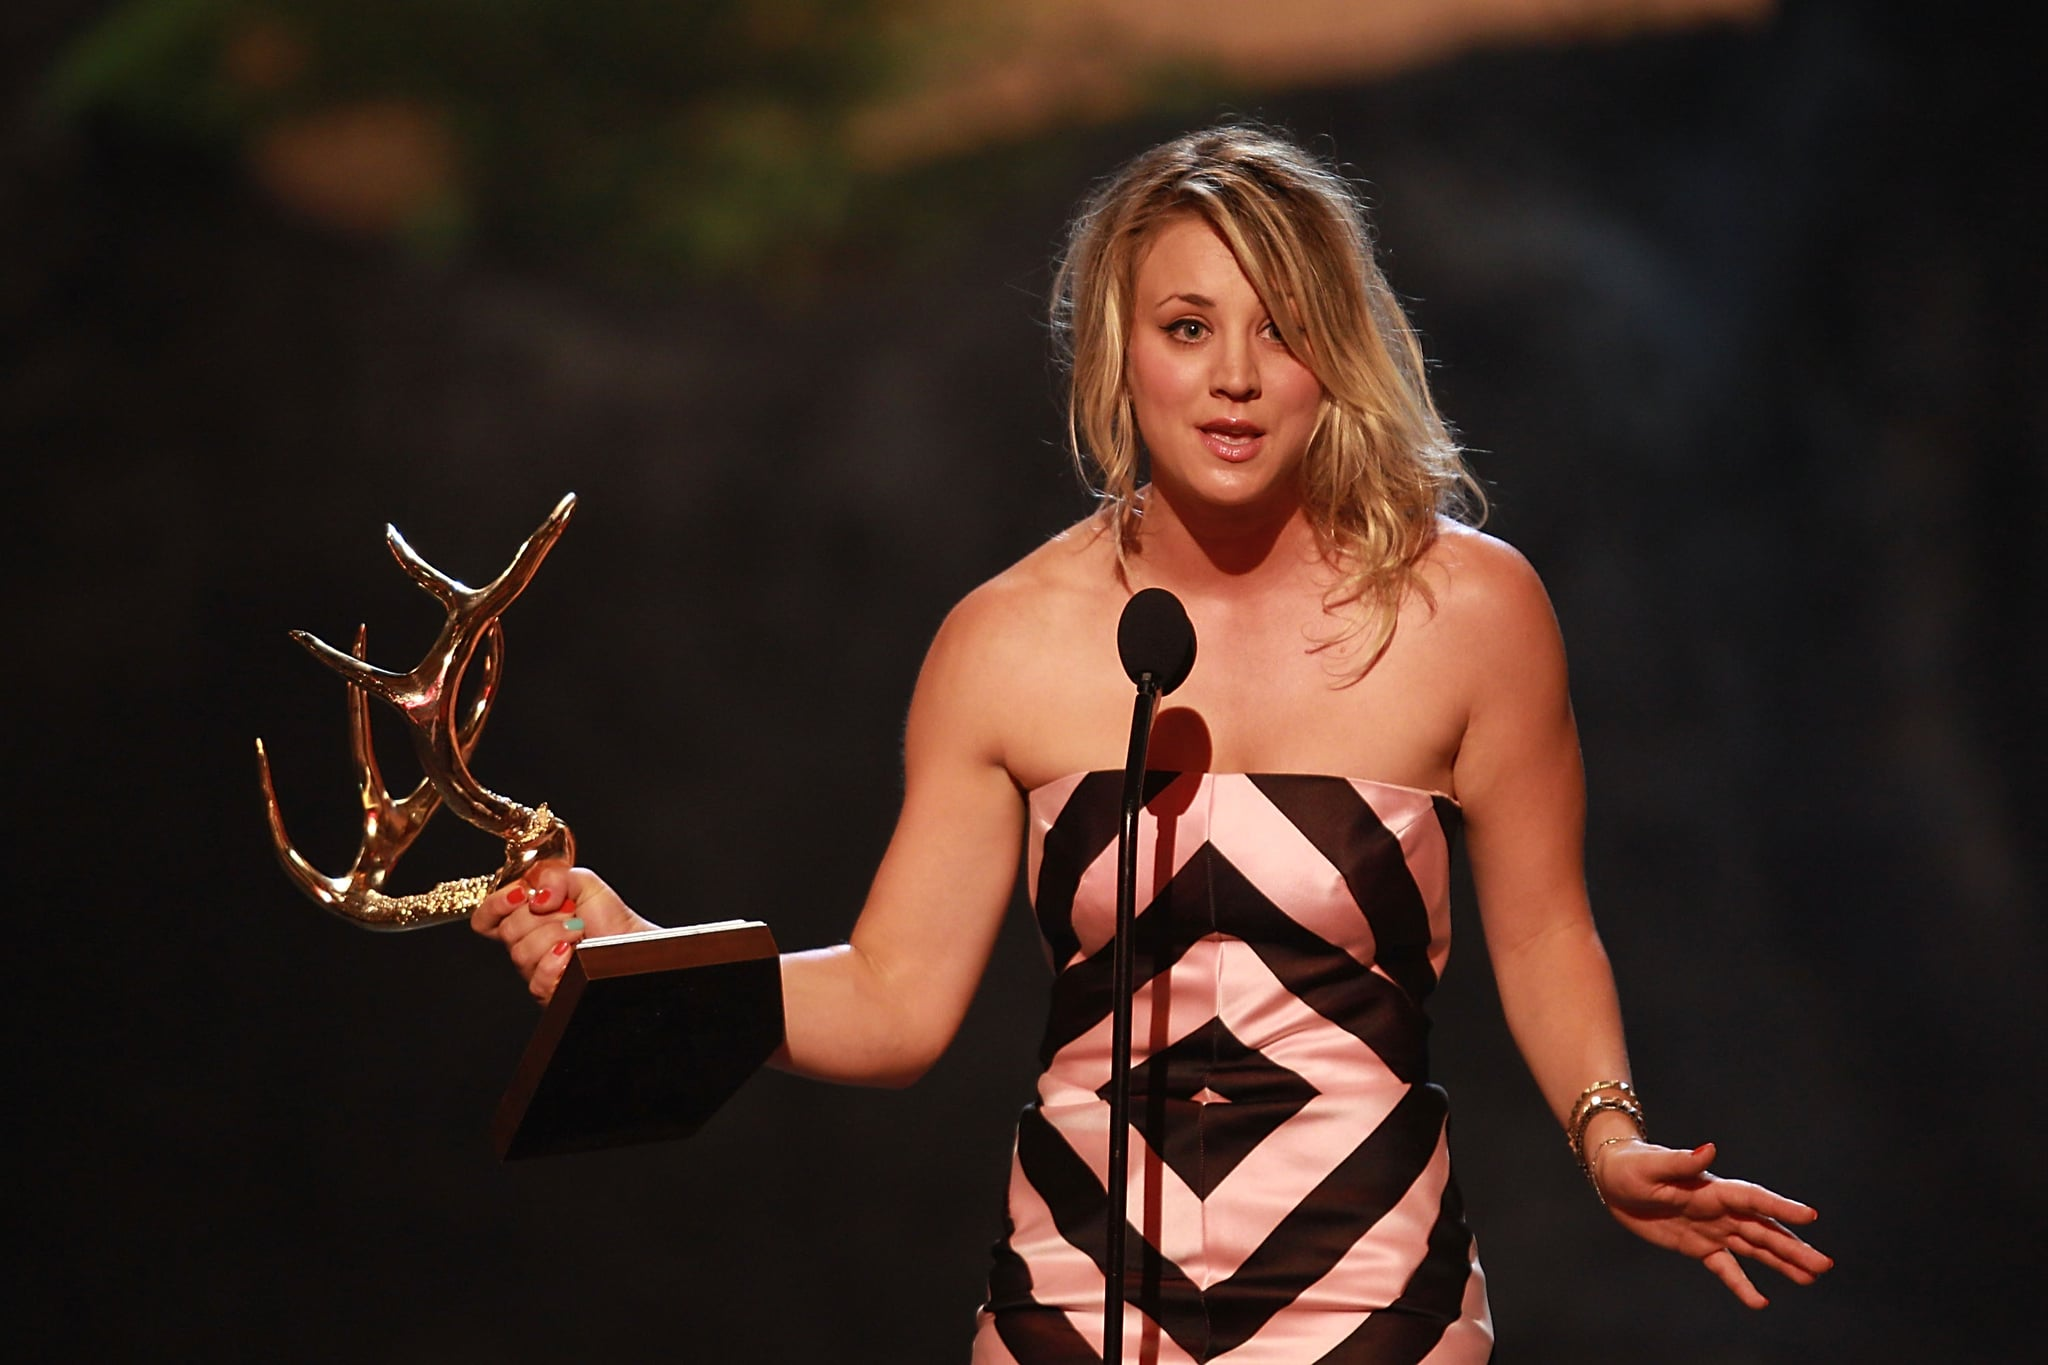 Kaley Cuoco chose a loosely tousled updo for her appearance at the Guys Choice Awards.